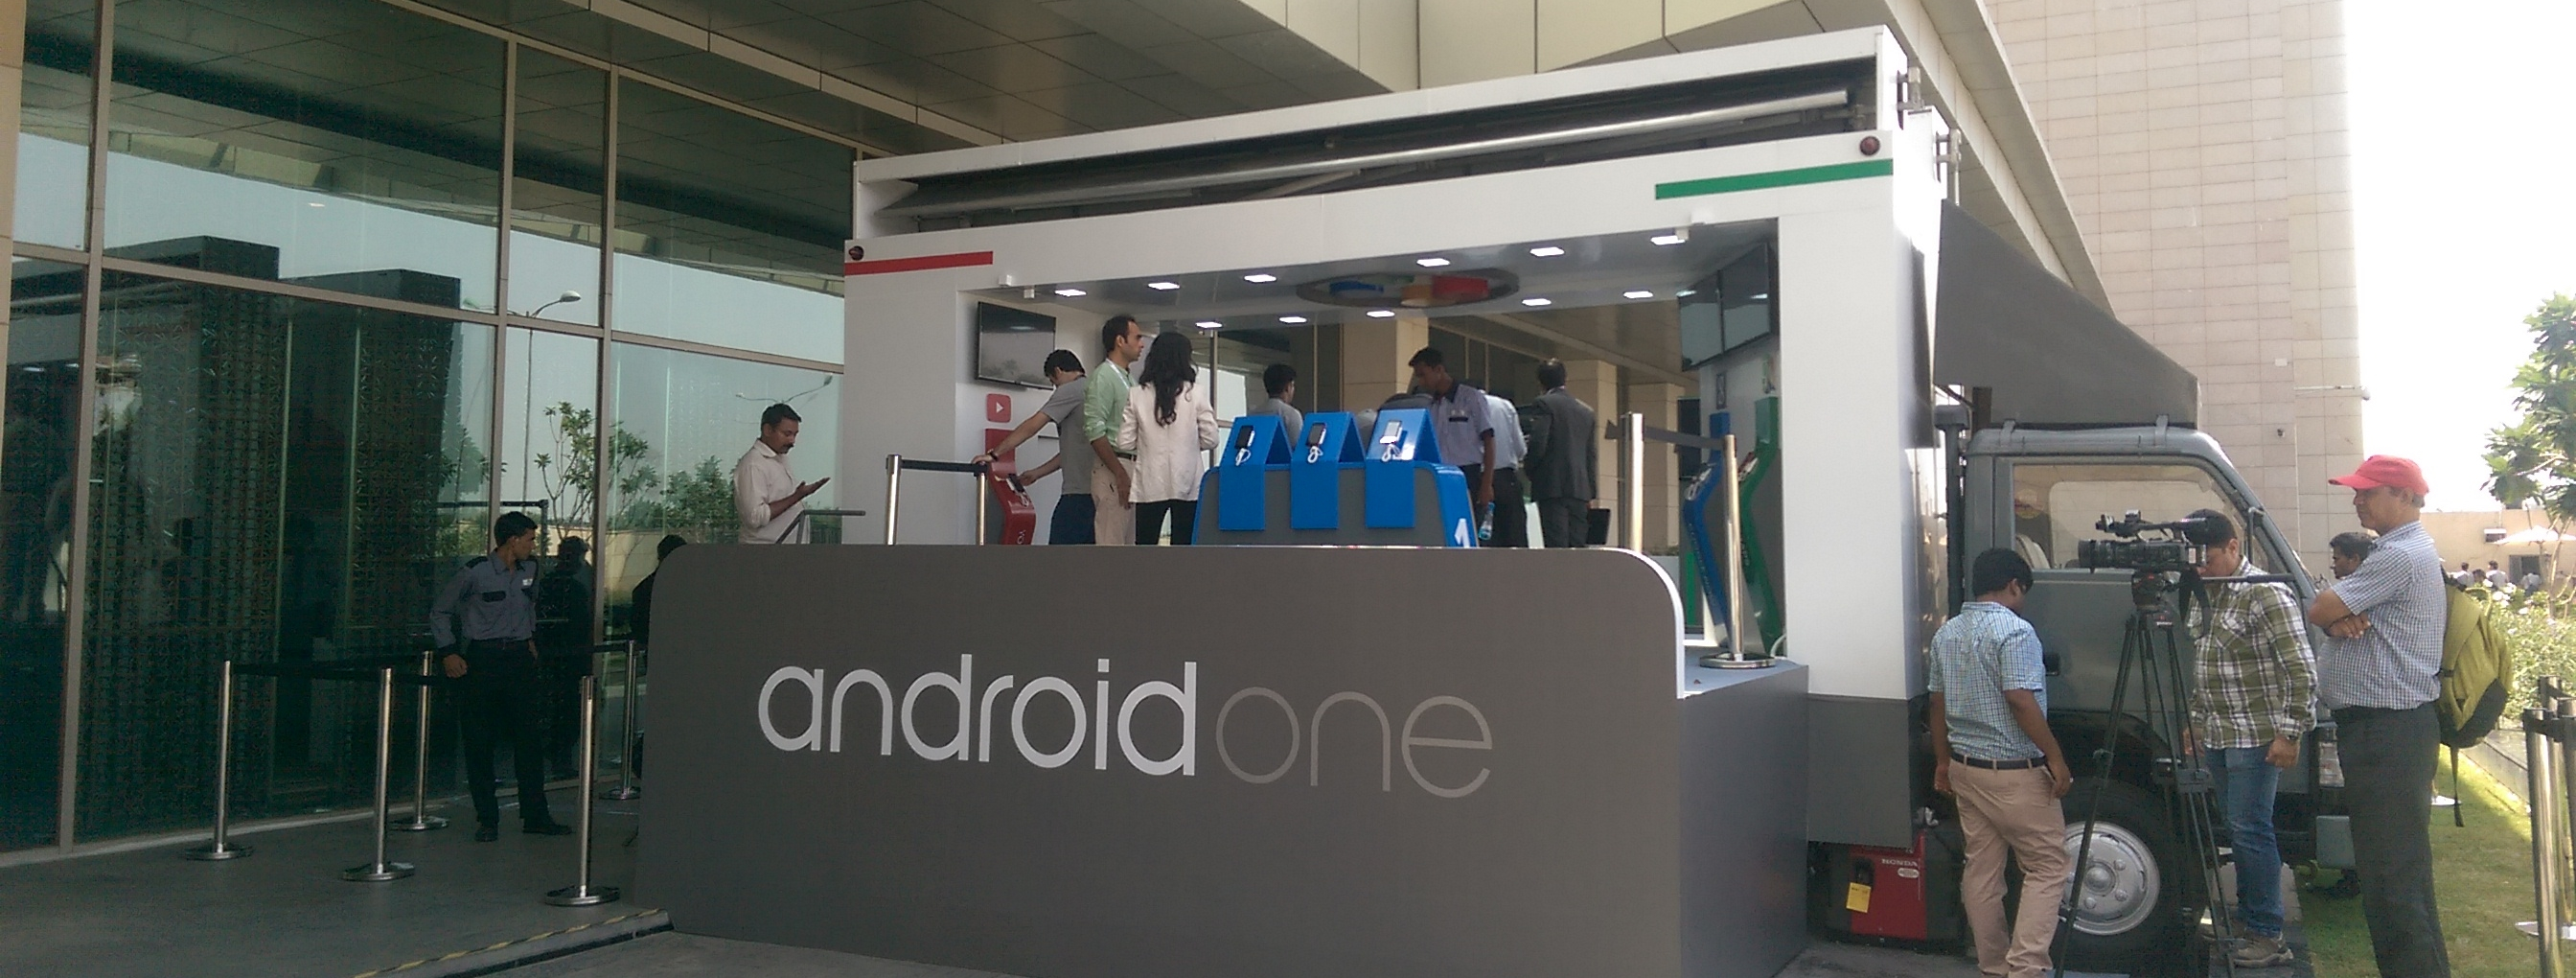 android-one2